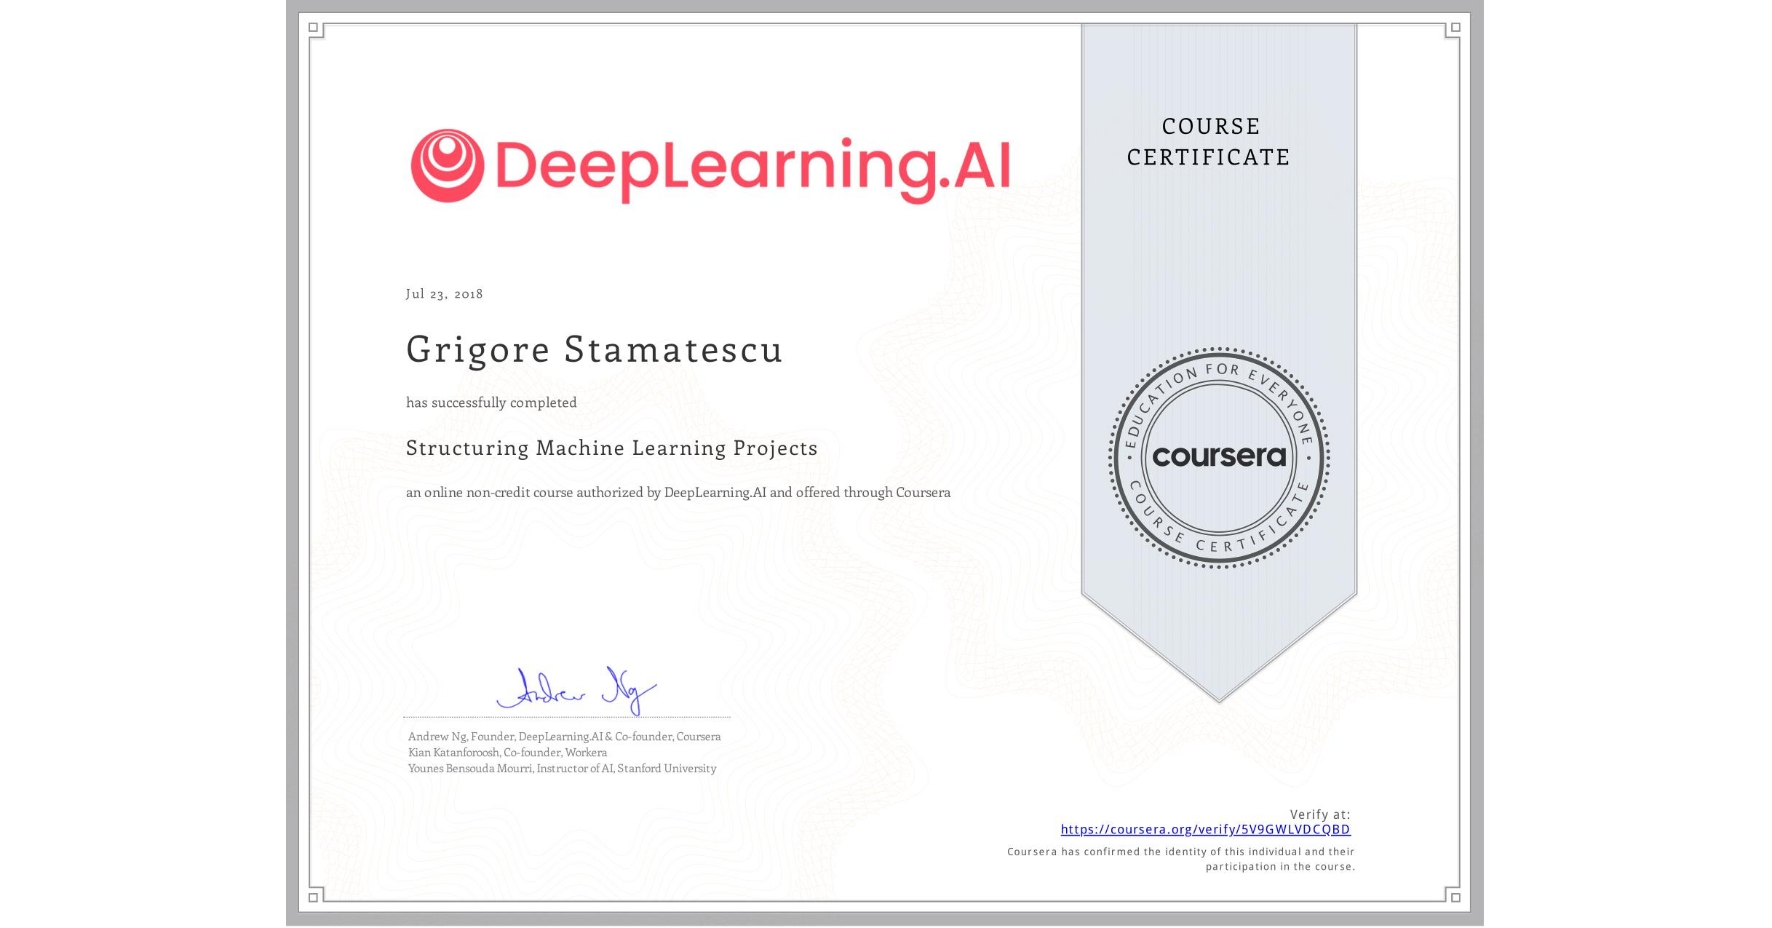 View certificate for Grigore Stamatescu, Structuring Machine Learning Projects, an online non-credit course authorized by DeepLearning.AI and offered through Coursera